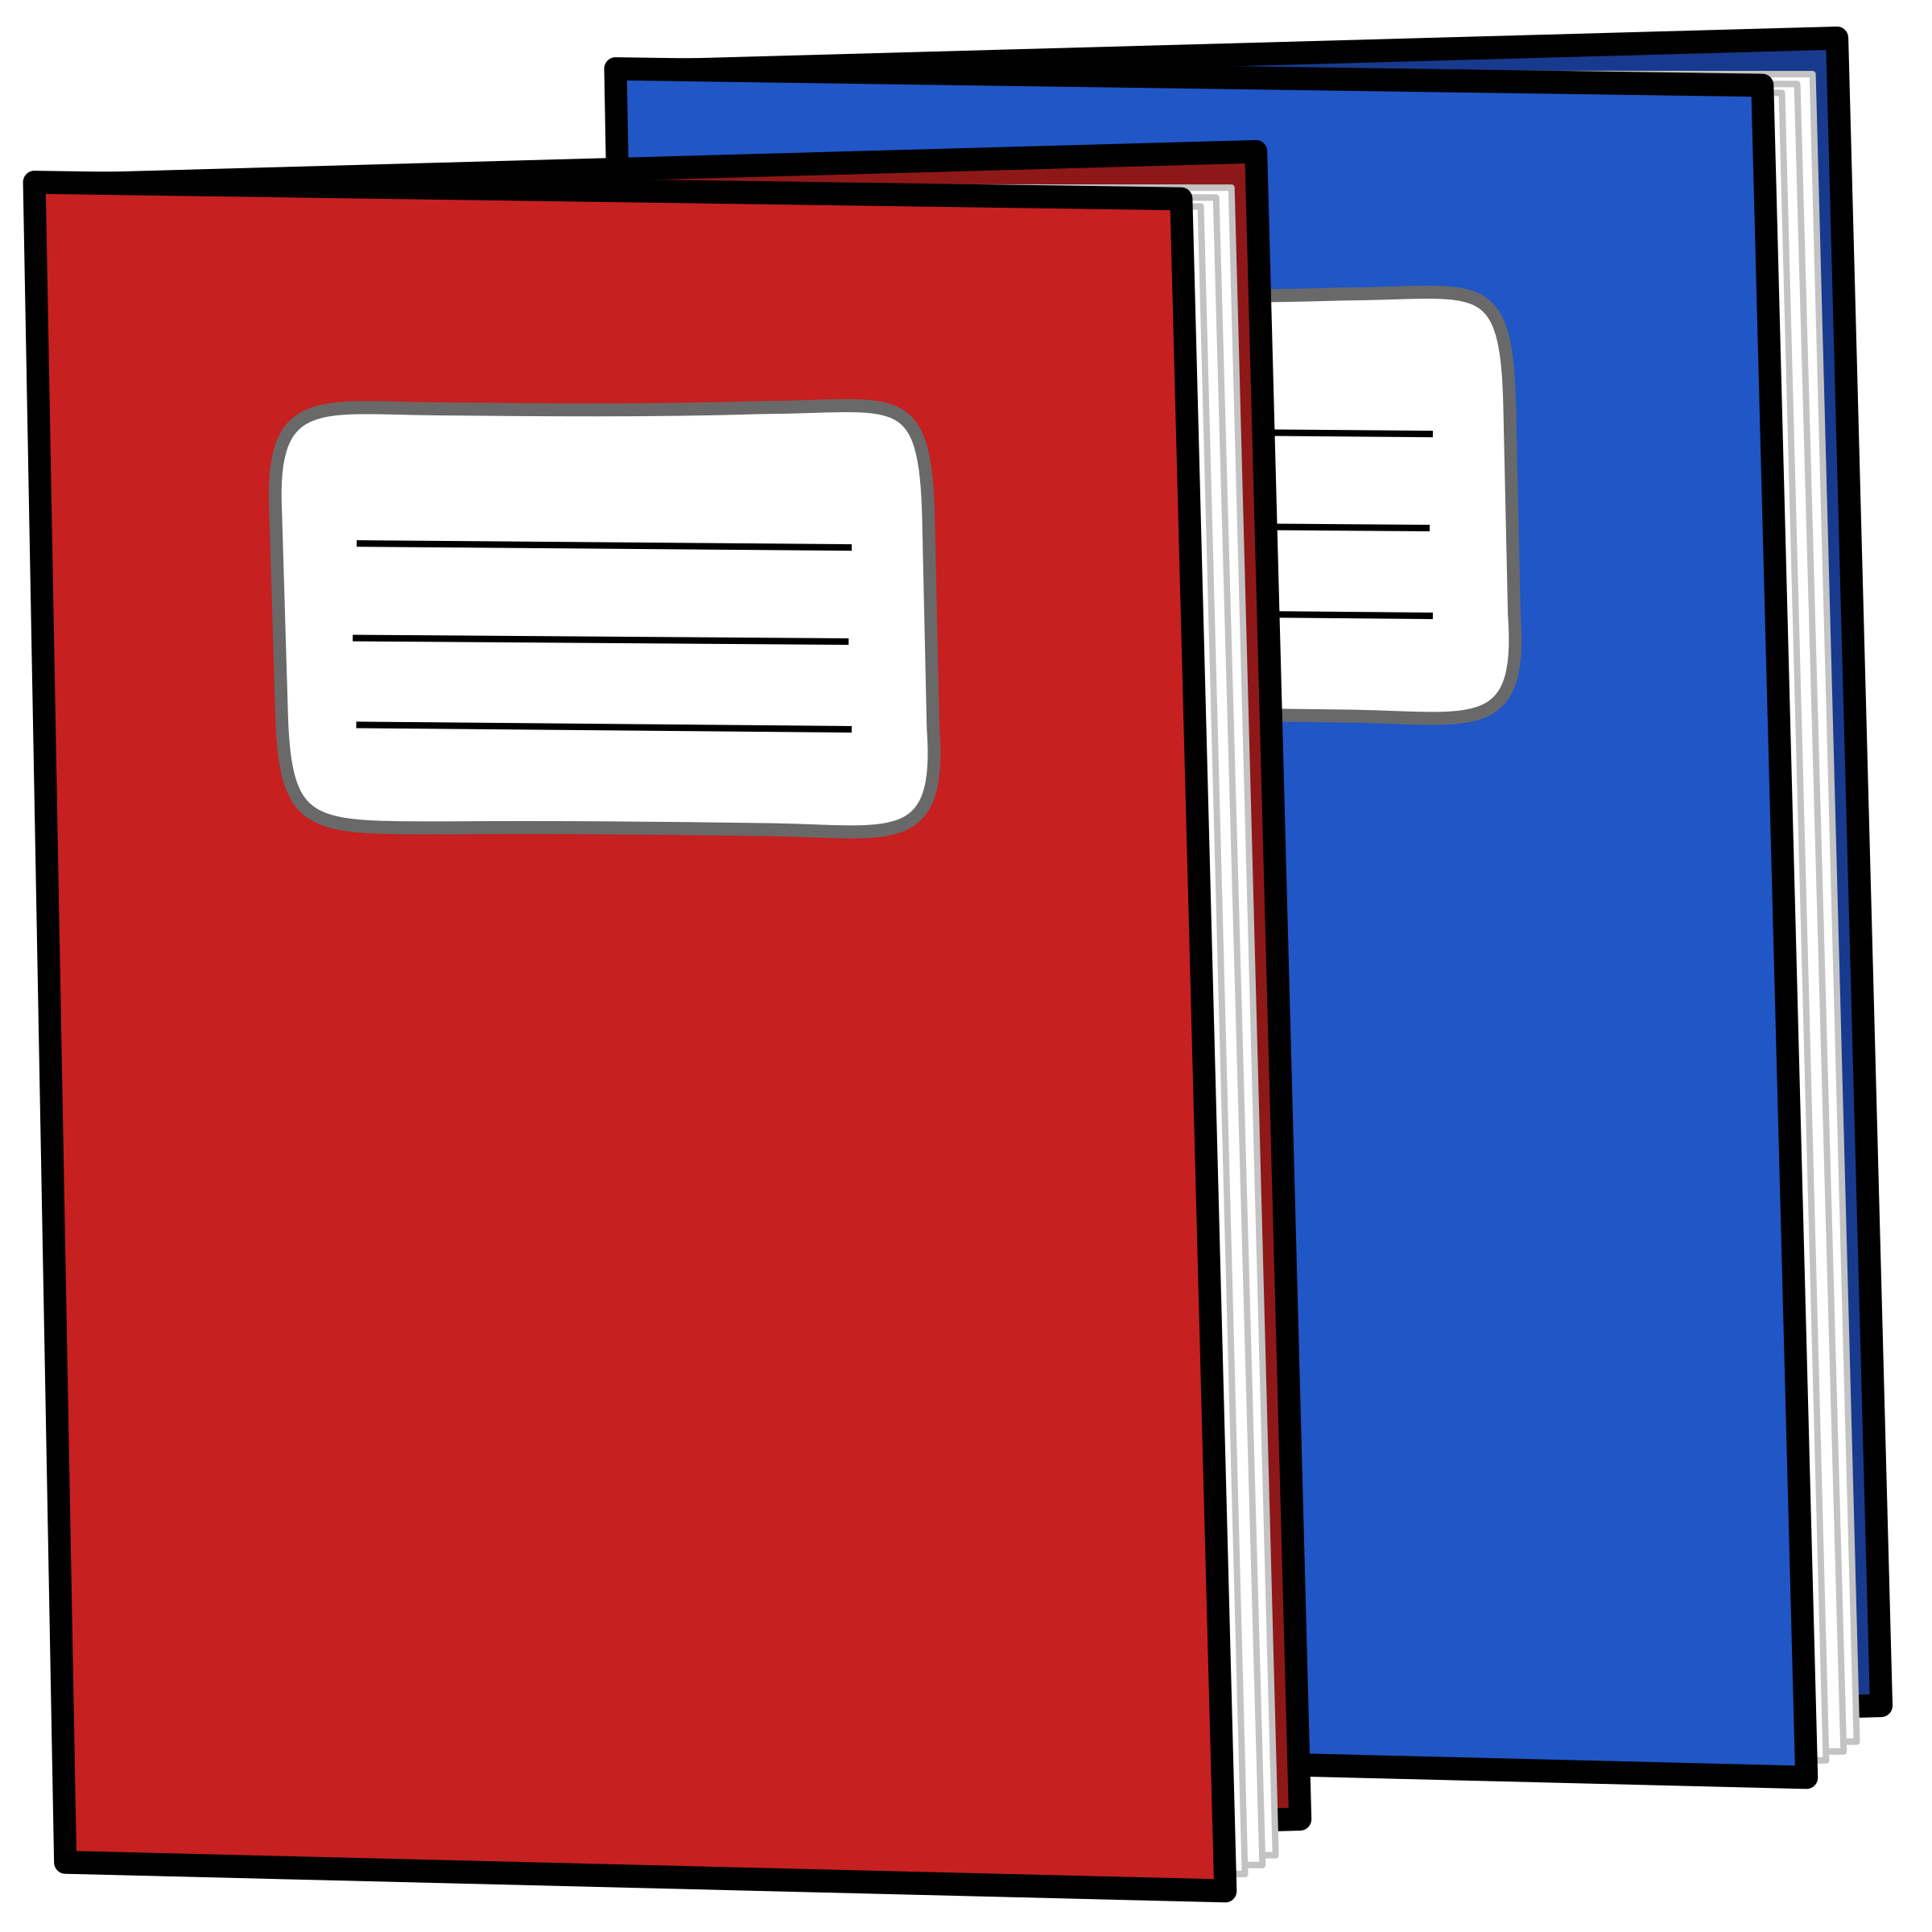 Exercise books icons png. Clipboard clipart attendance record